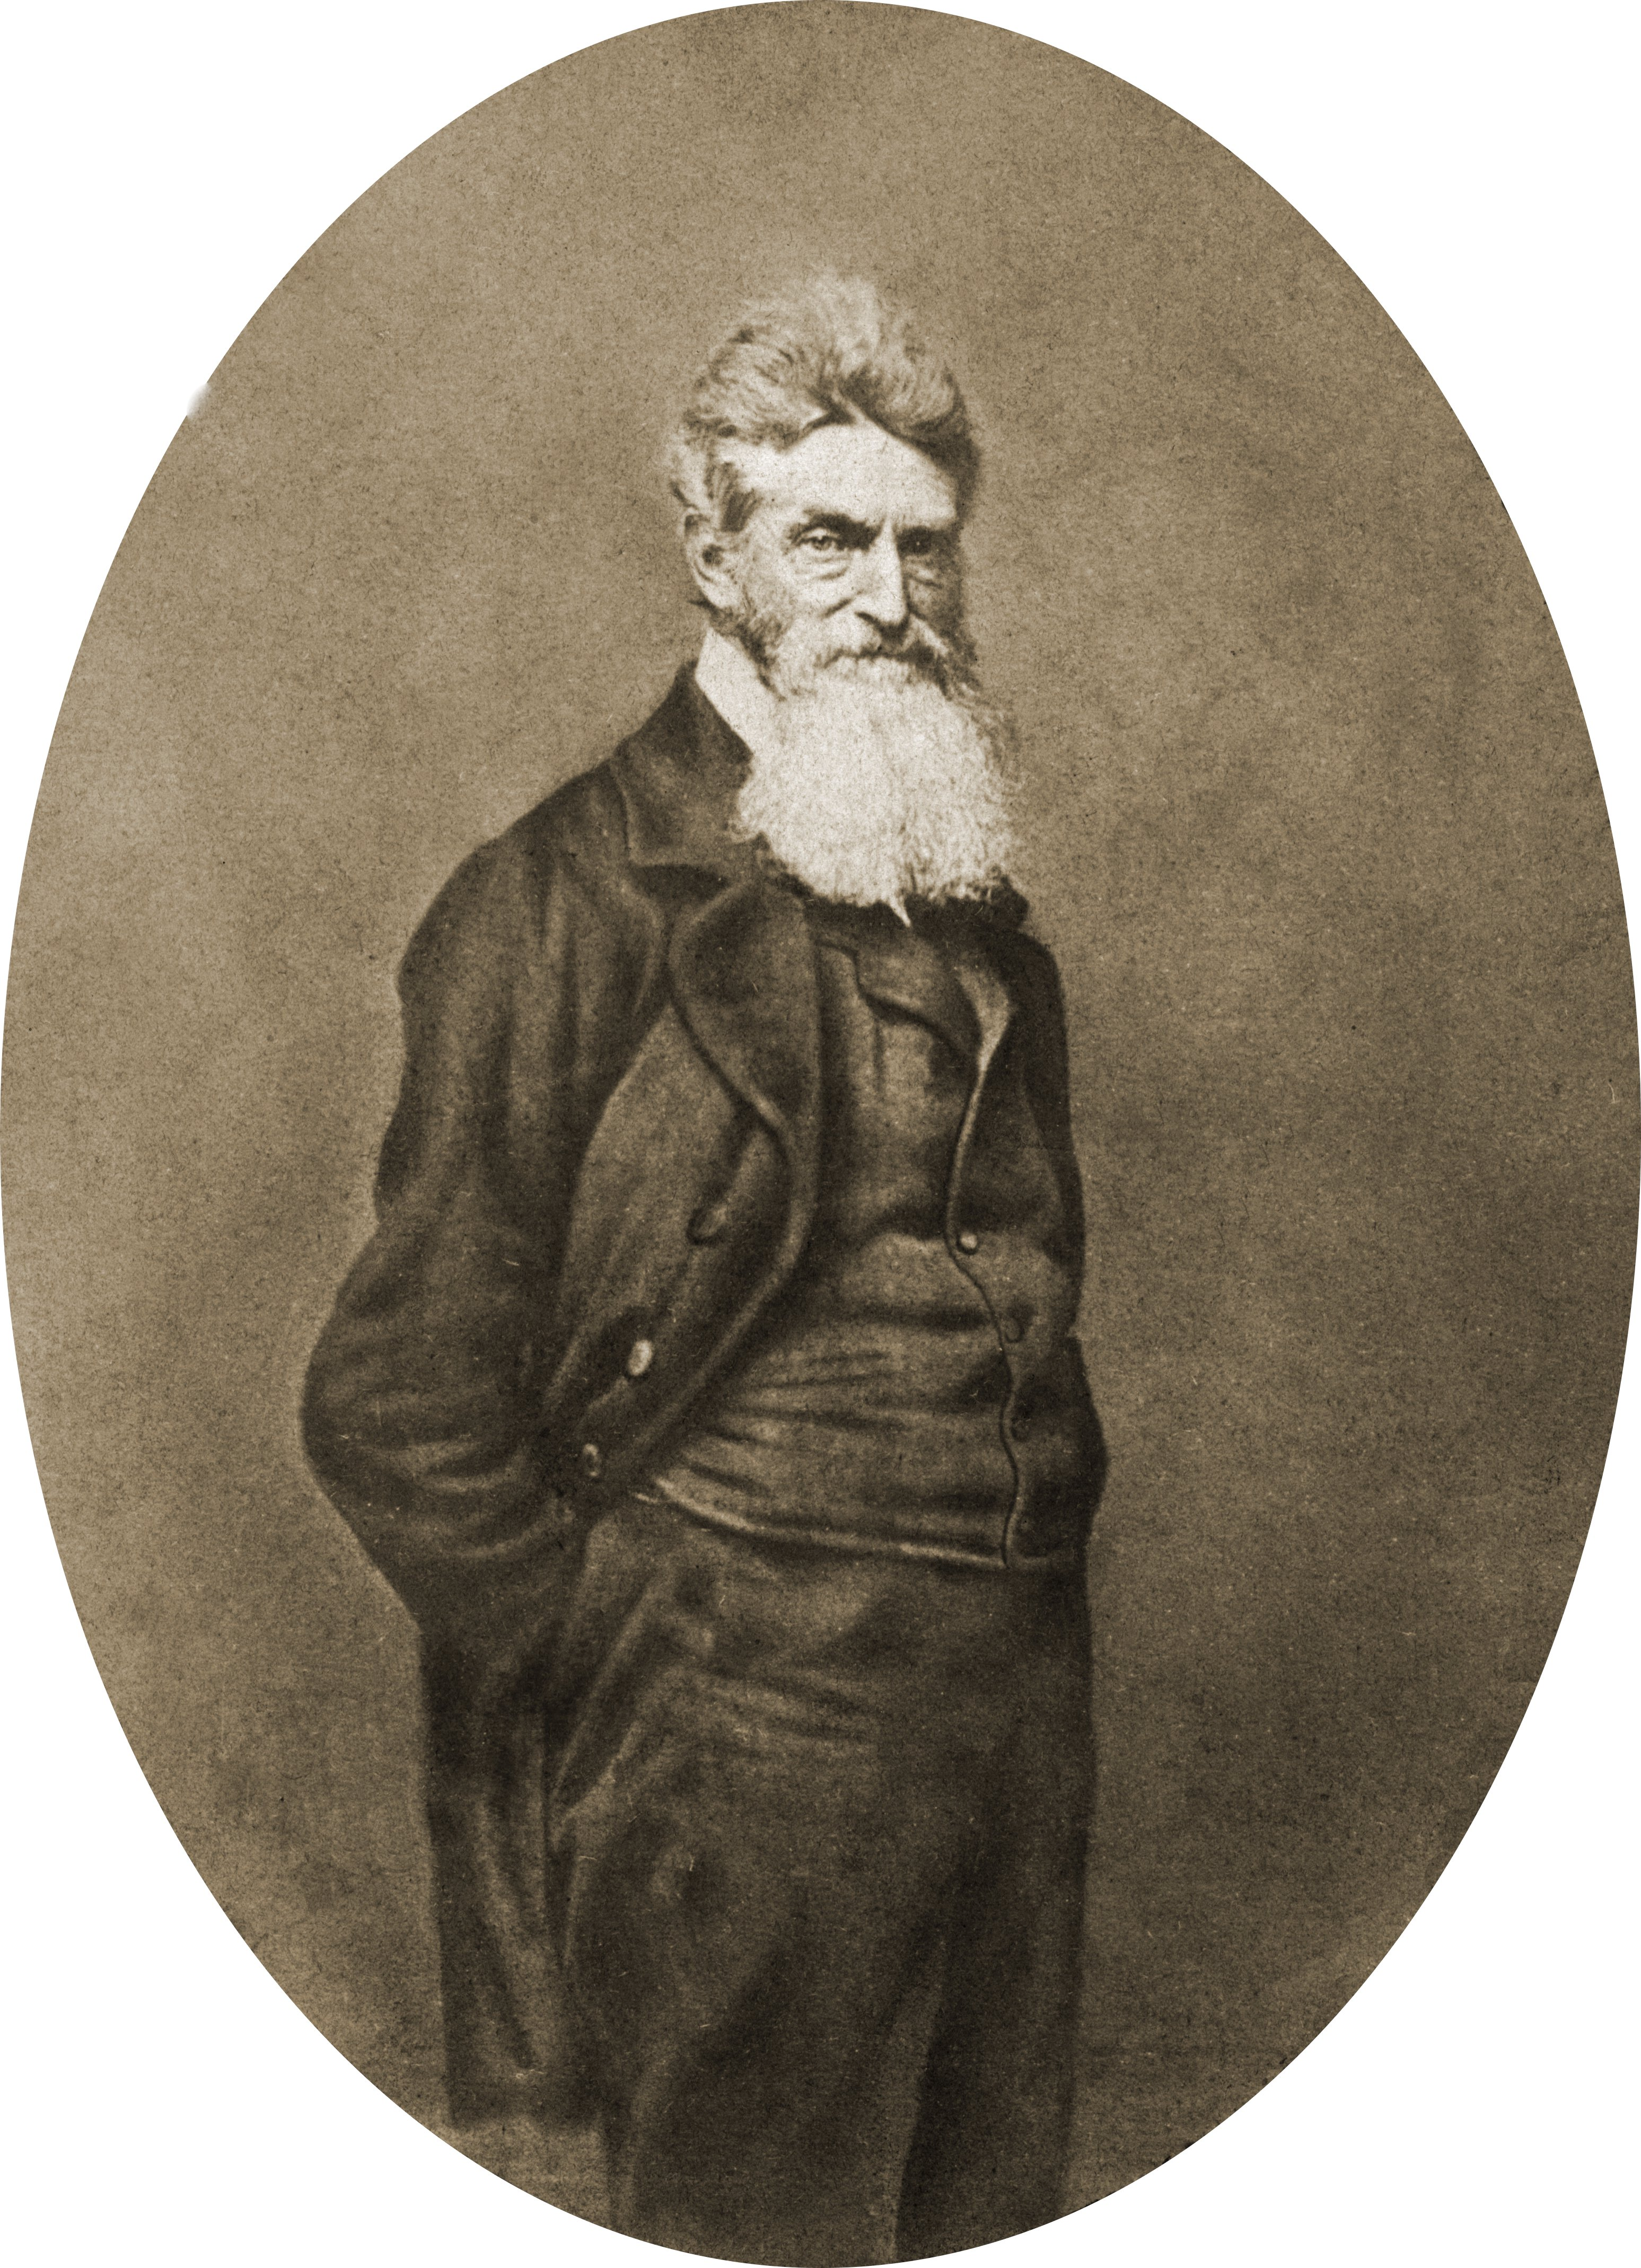 an examination of the actions of john brown against slavery When john brown proclaimed emancipation to the slaves of maryland and  in  studying the character and works of a great man, it is always desirable to learn.